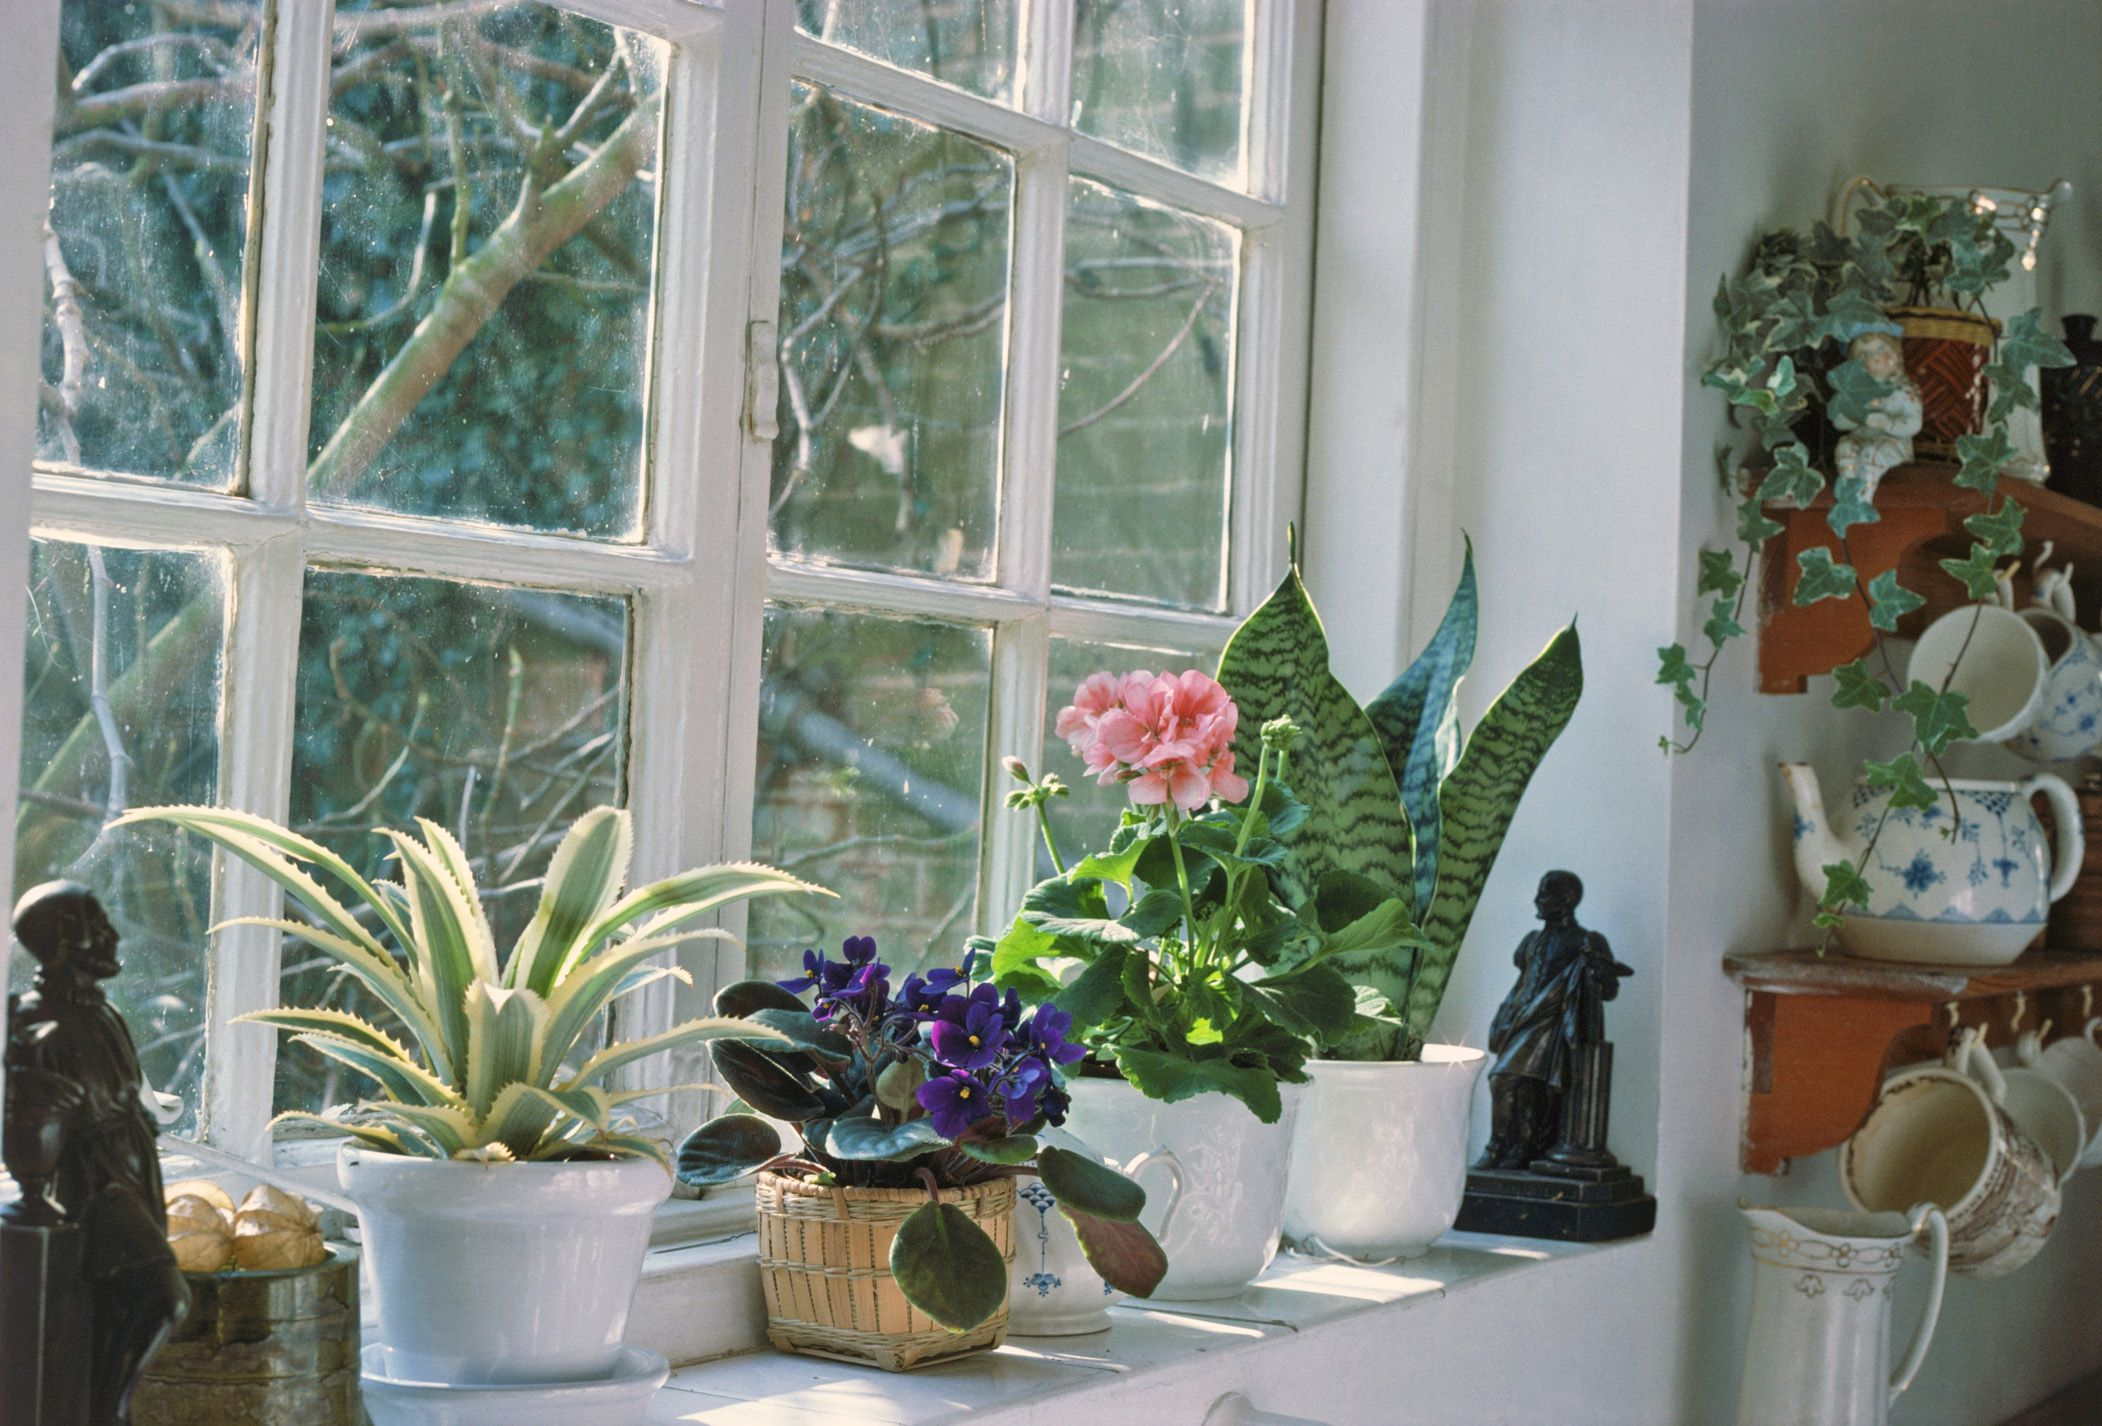 winter care of houseplants - House Plants